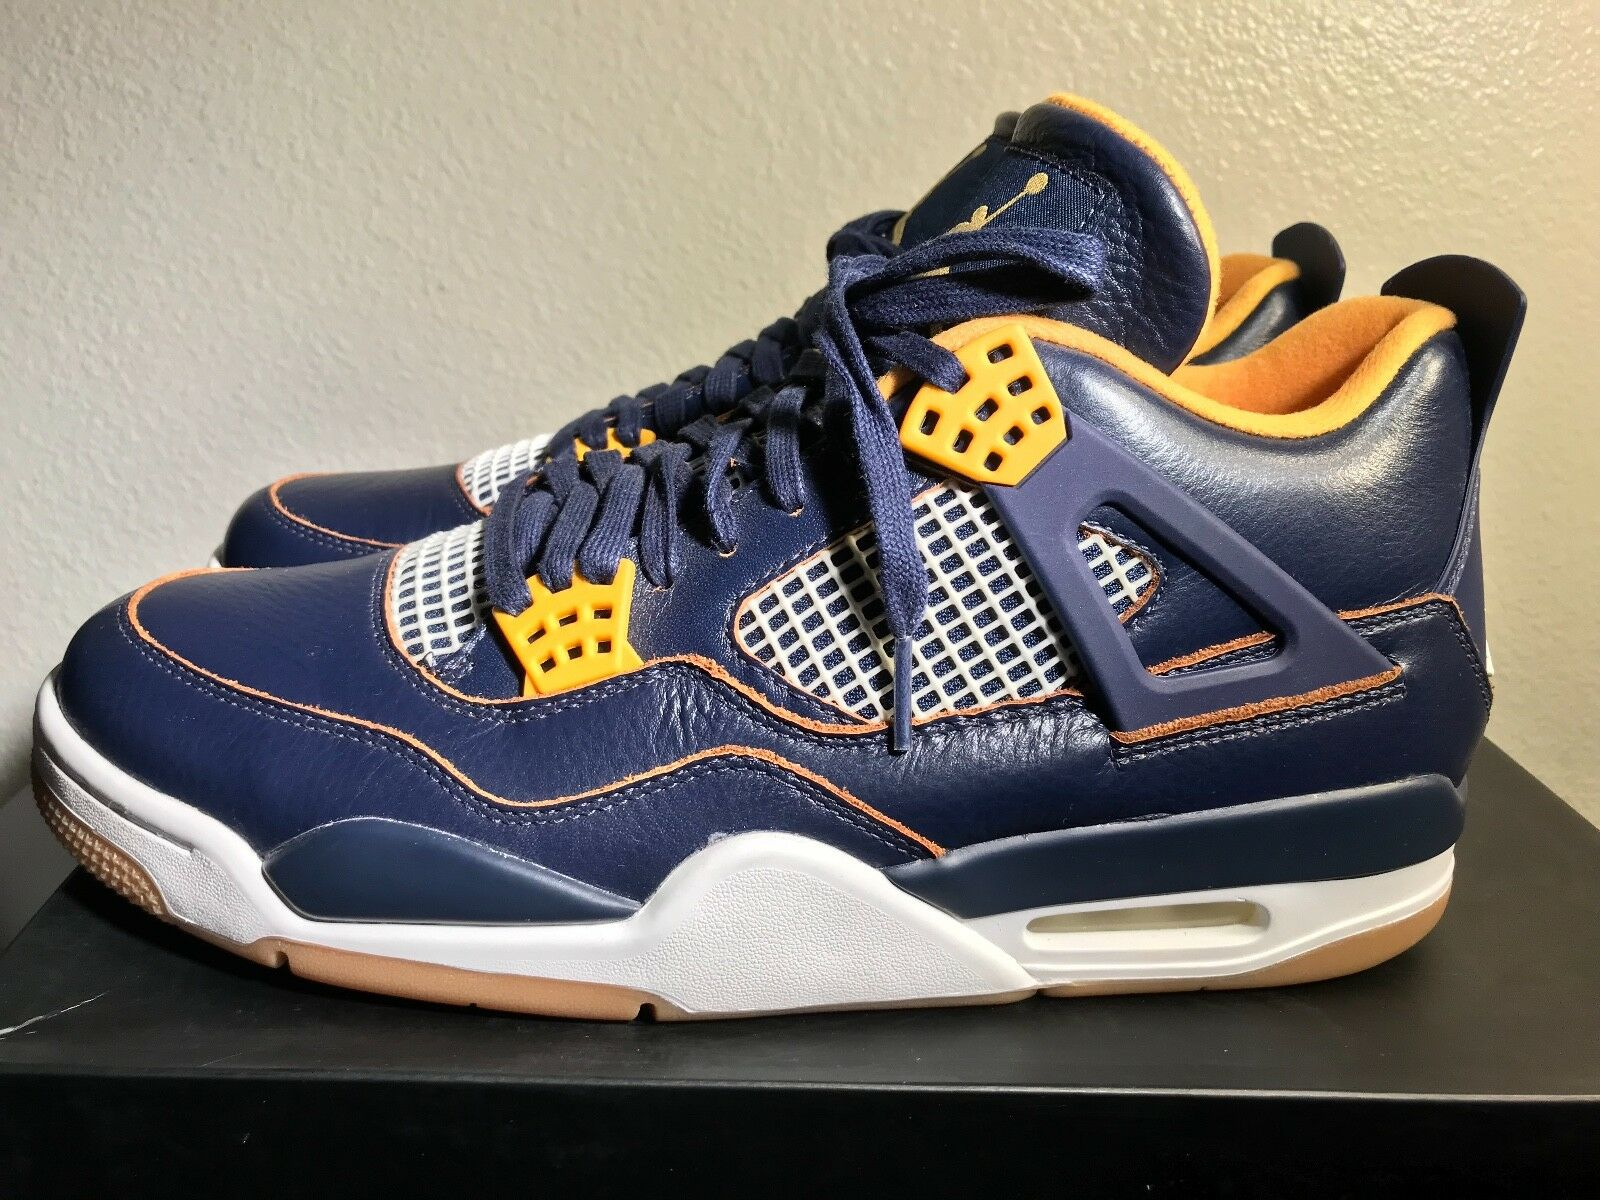 Air Jordan 4 Retro Dunk From Above 308497-425 Uomo Size 11 Navy Gold Gum DS